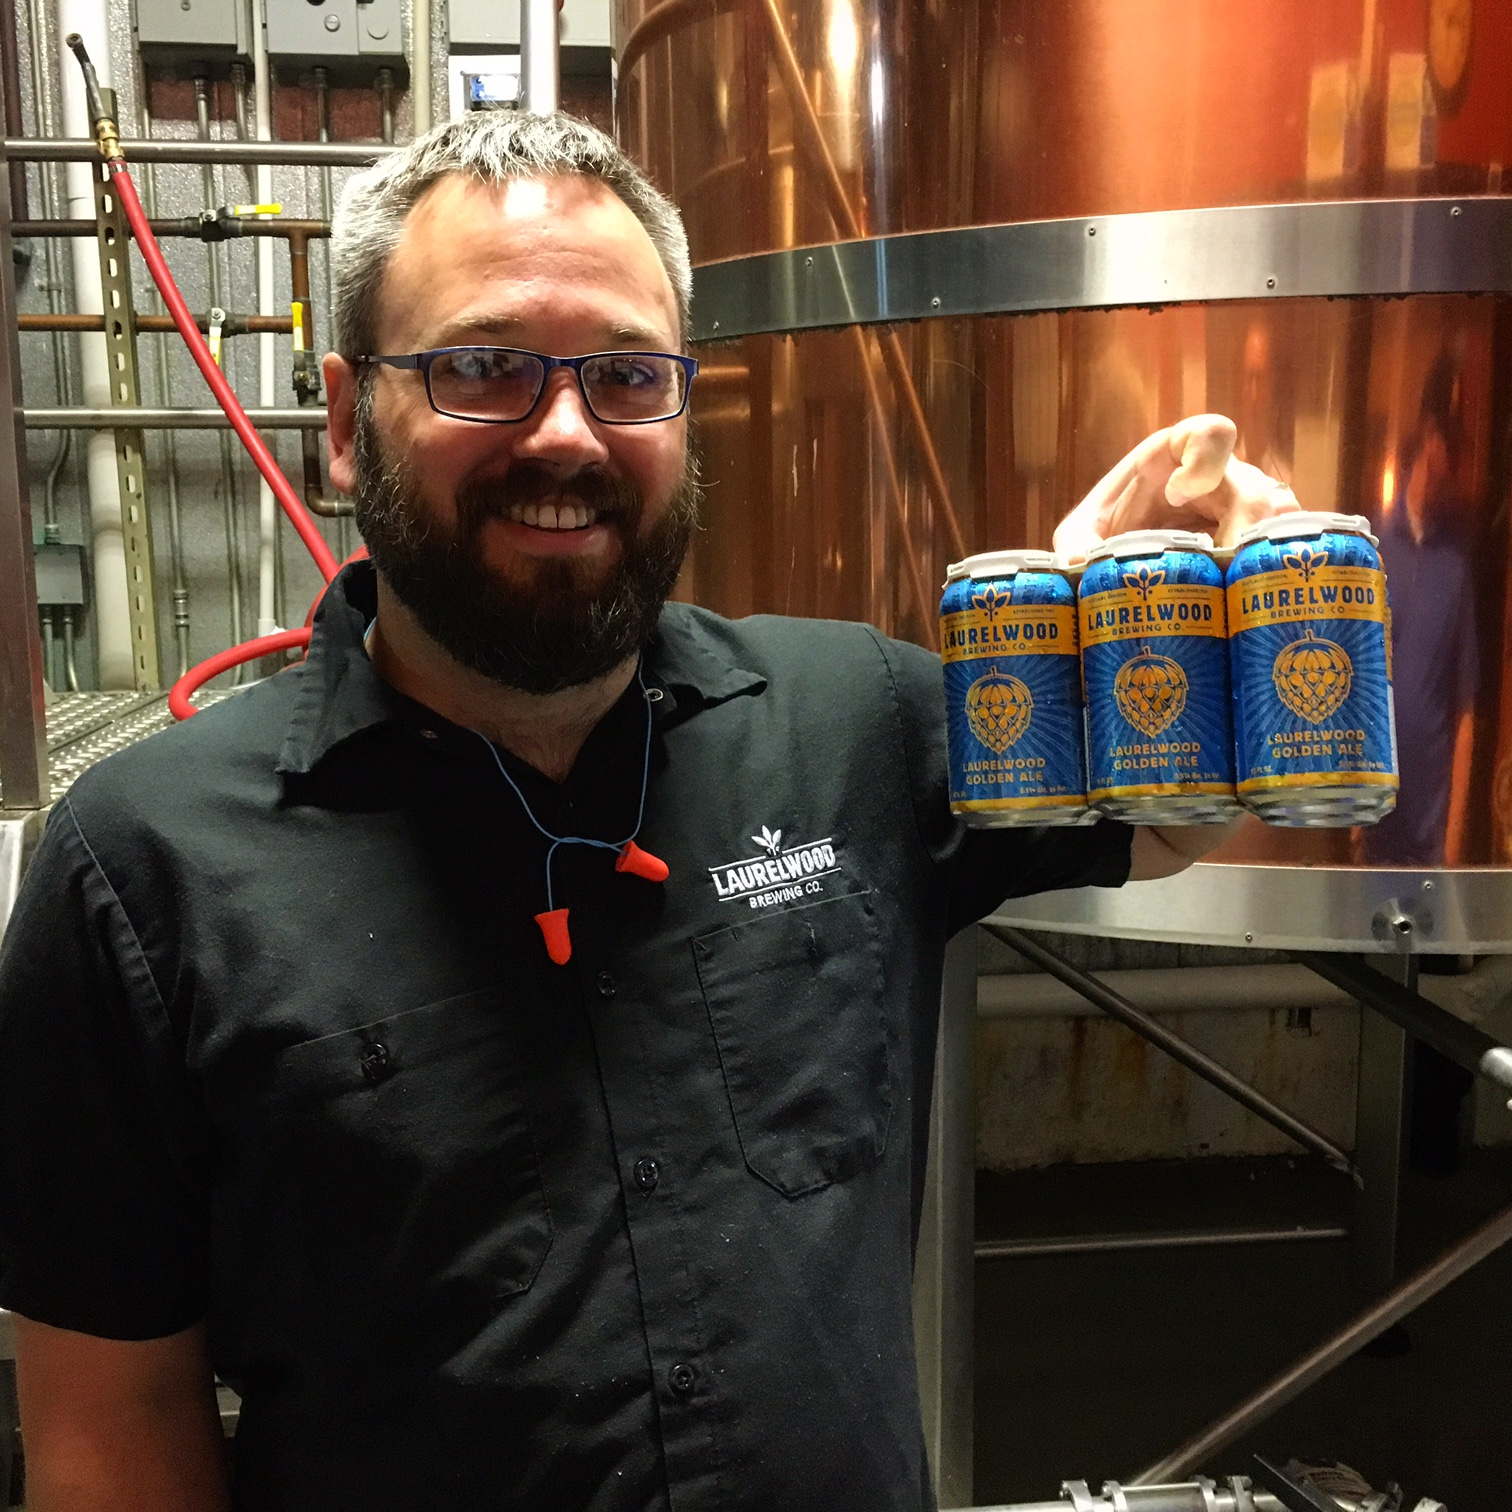 Laurelwood head brewer Shane Watterson holding a freshly canned six pack of Laurelwood Golden Ale.